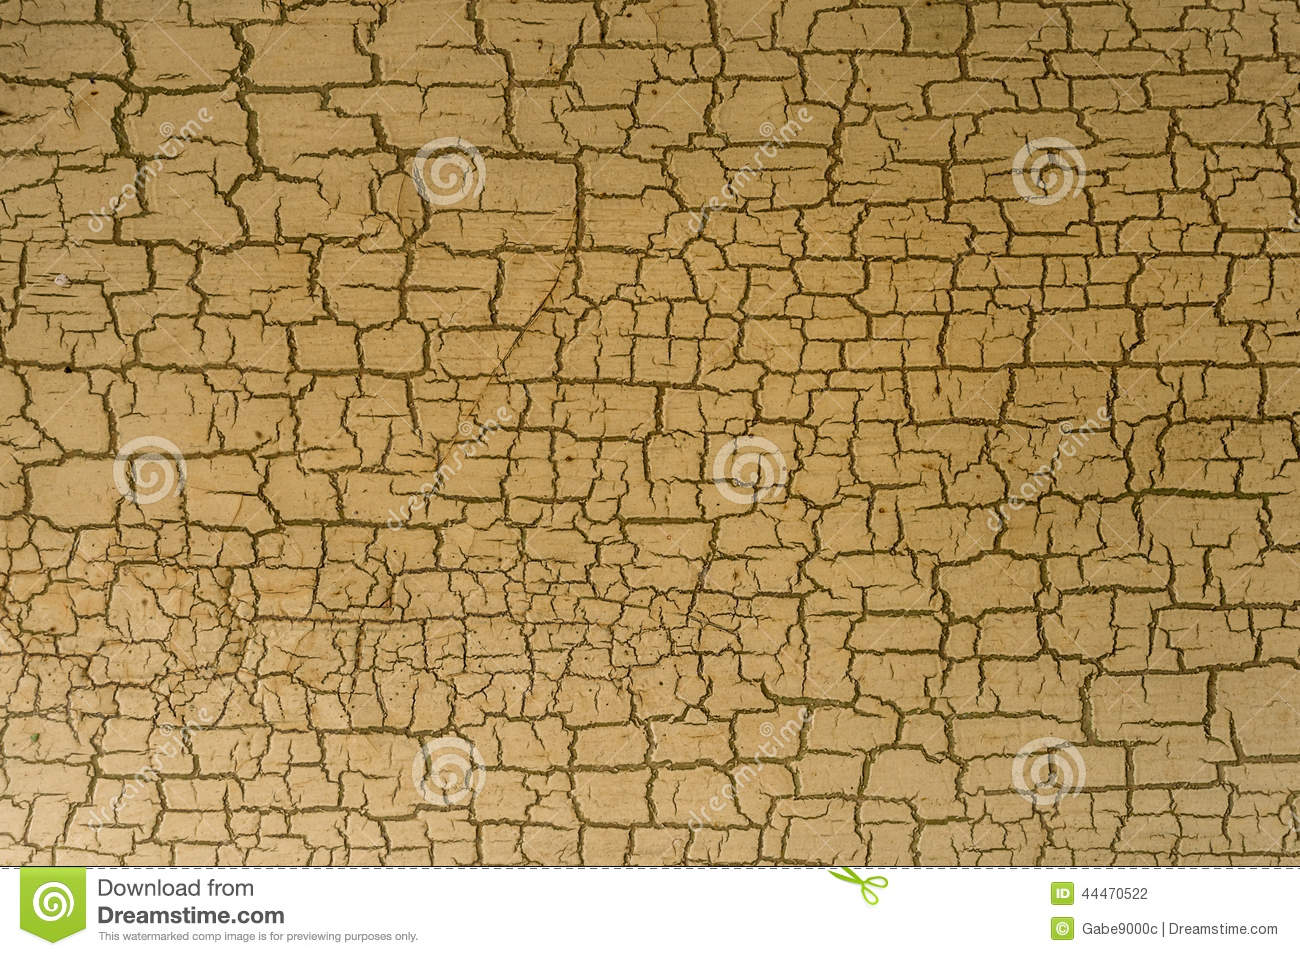 Cracked Paint Effect On Wall Stock Photo - Image: 44470522